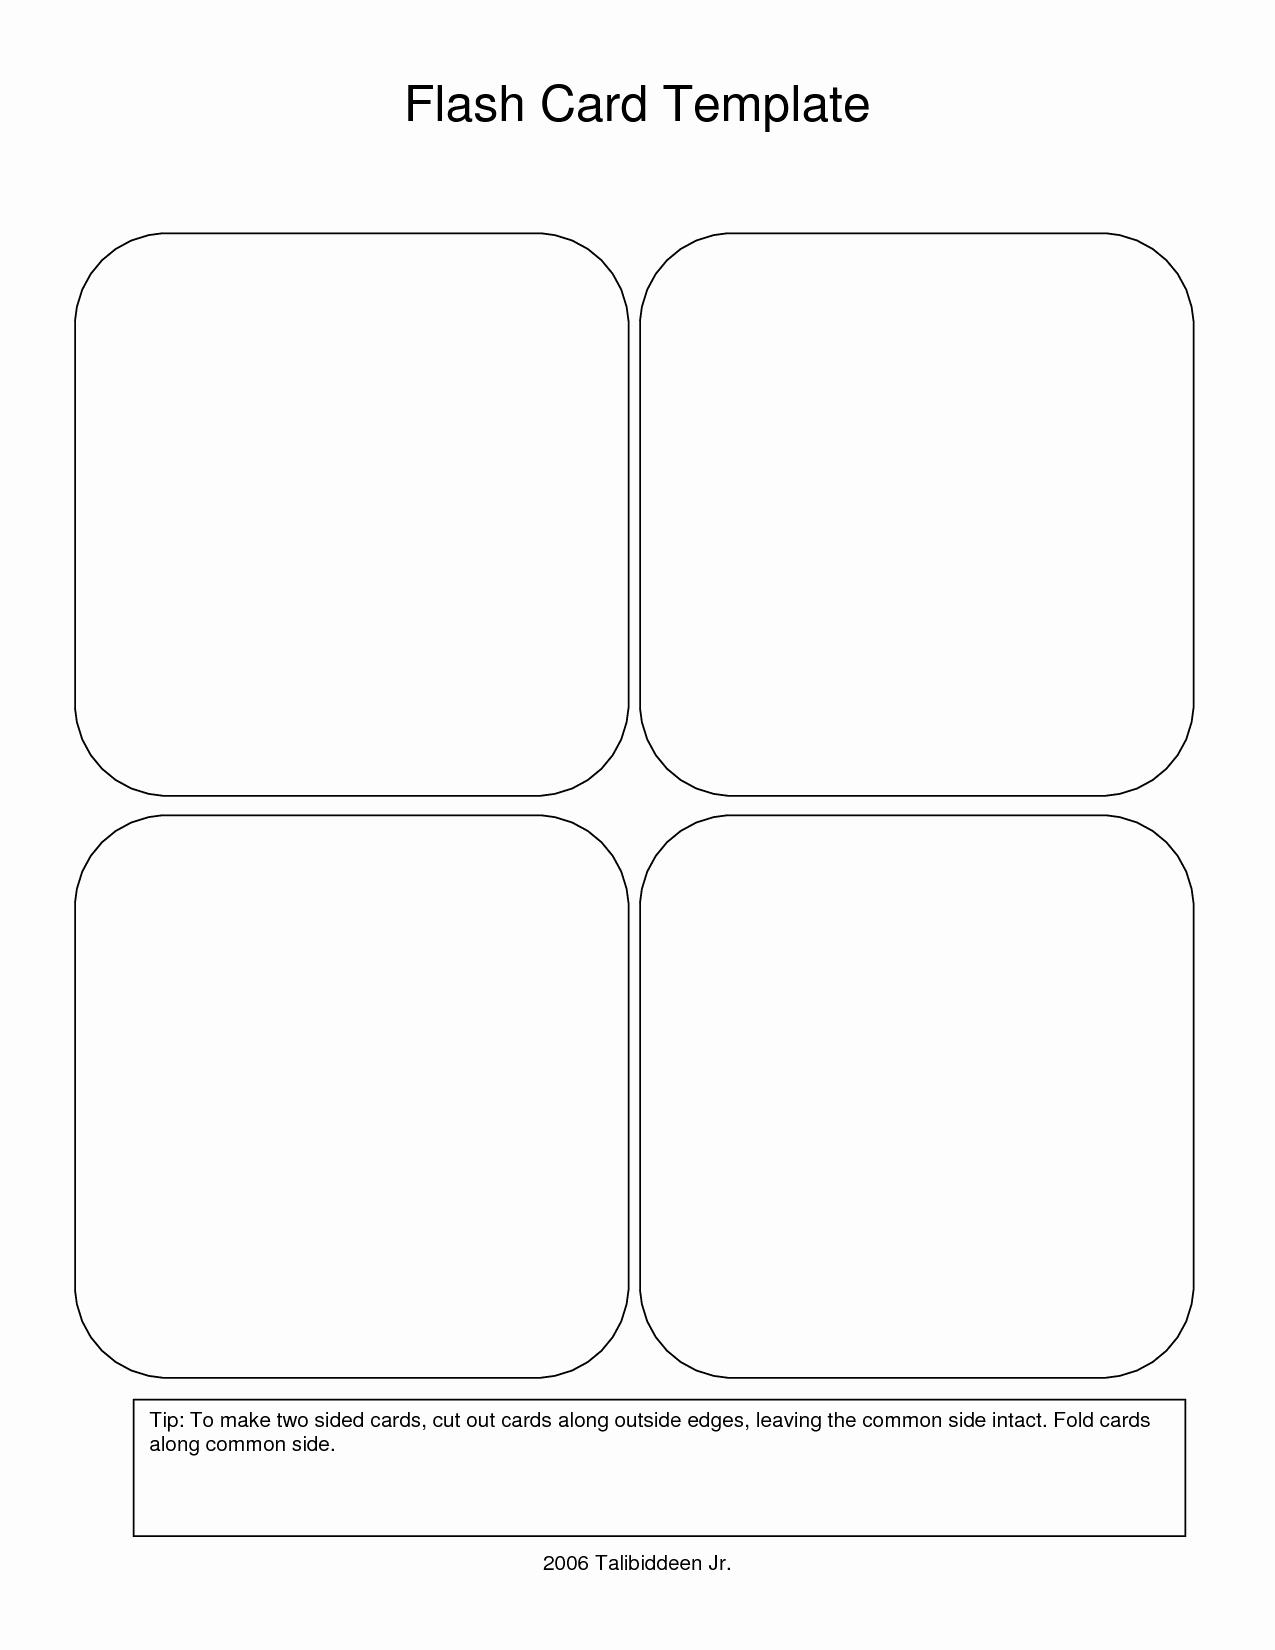 Flash Card Template Pdf Unique Flash Card Template Beepmunk